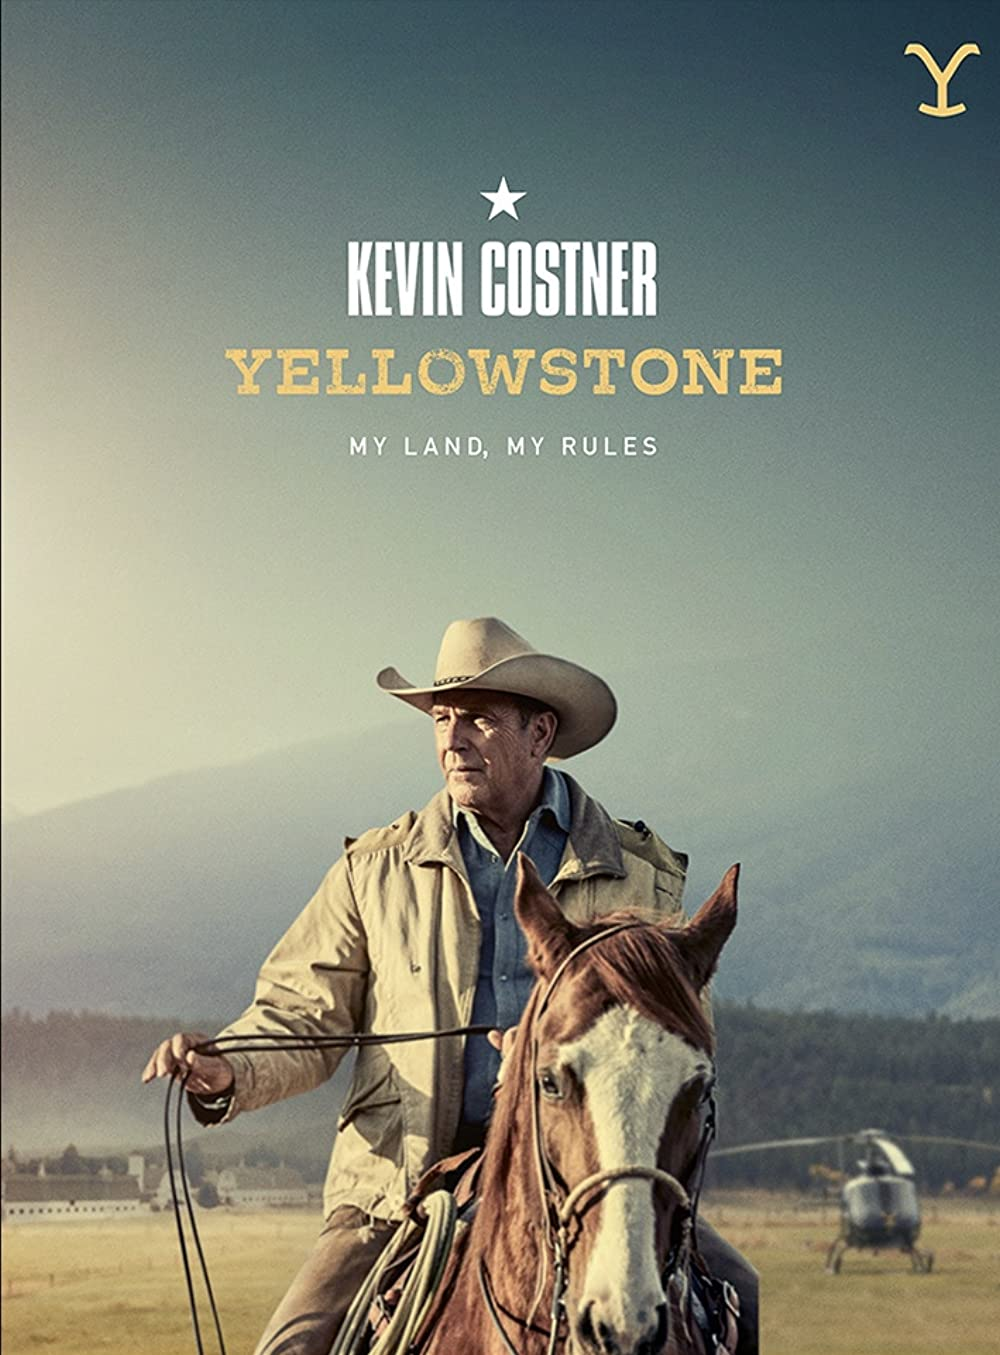 Yellowstone,黃石國家公園,Kevin Costner,教父,Nomadland,Kelly Reilly,電視劇,派拉蒙